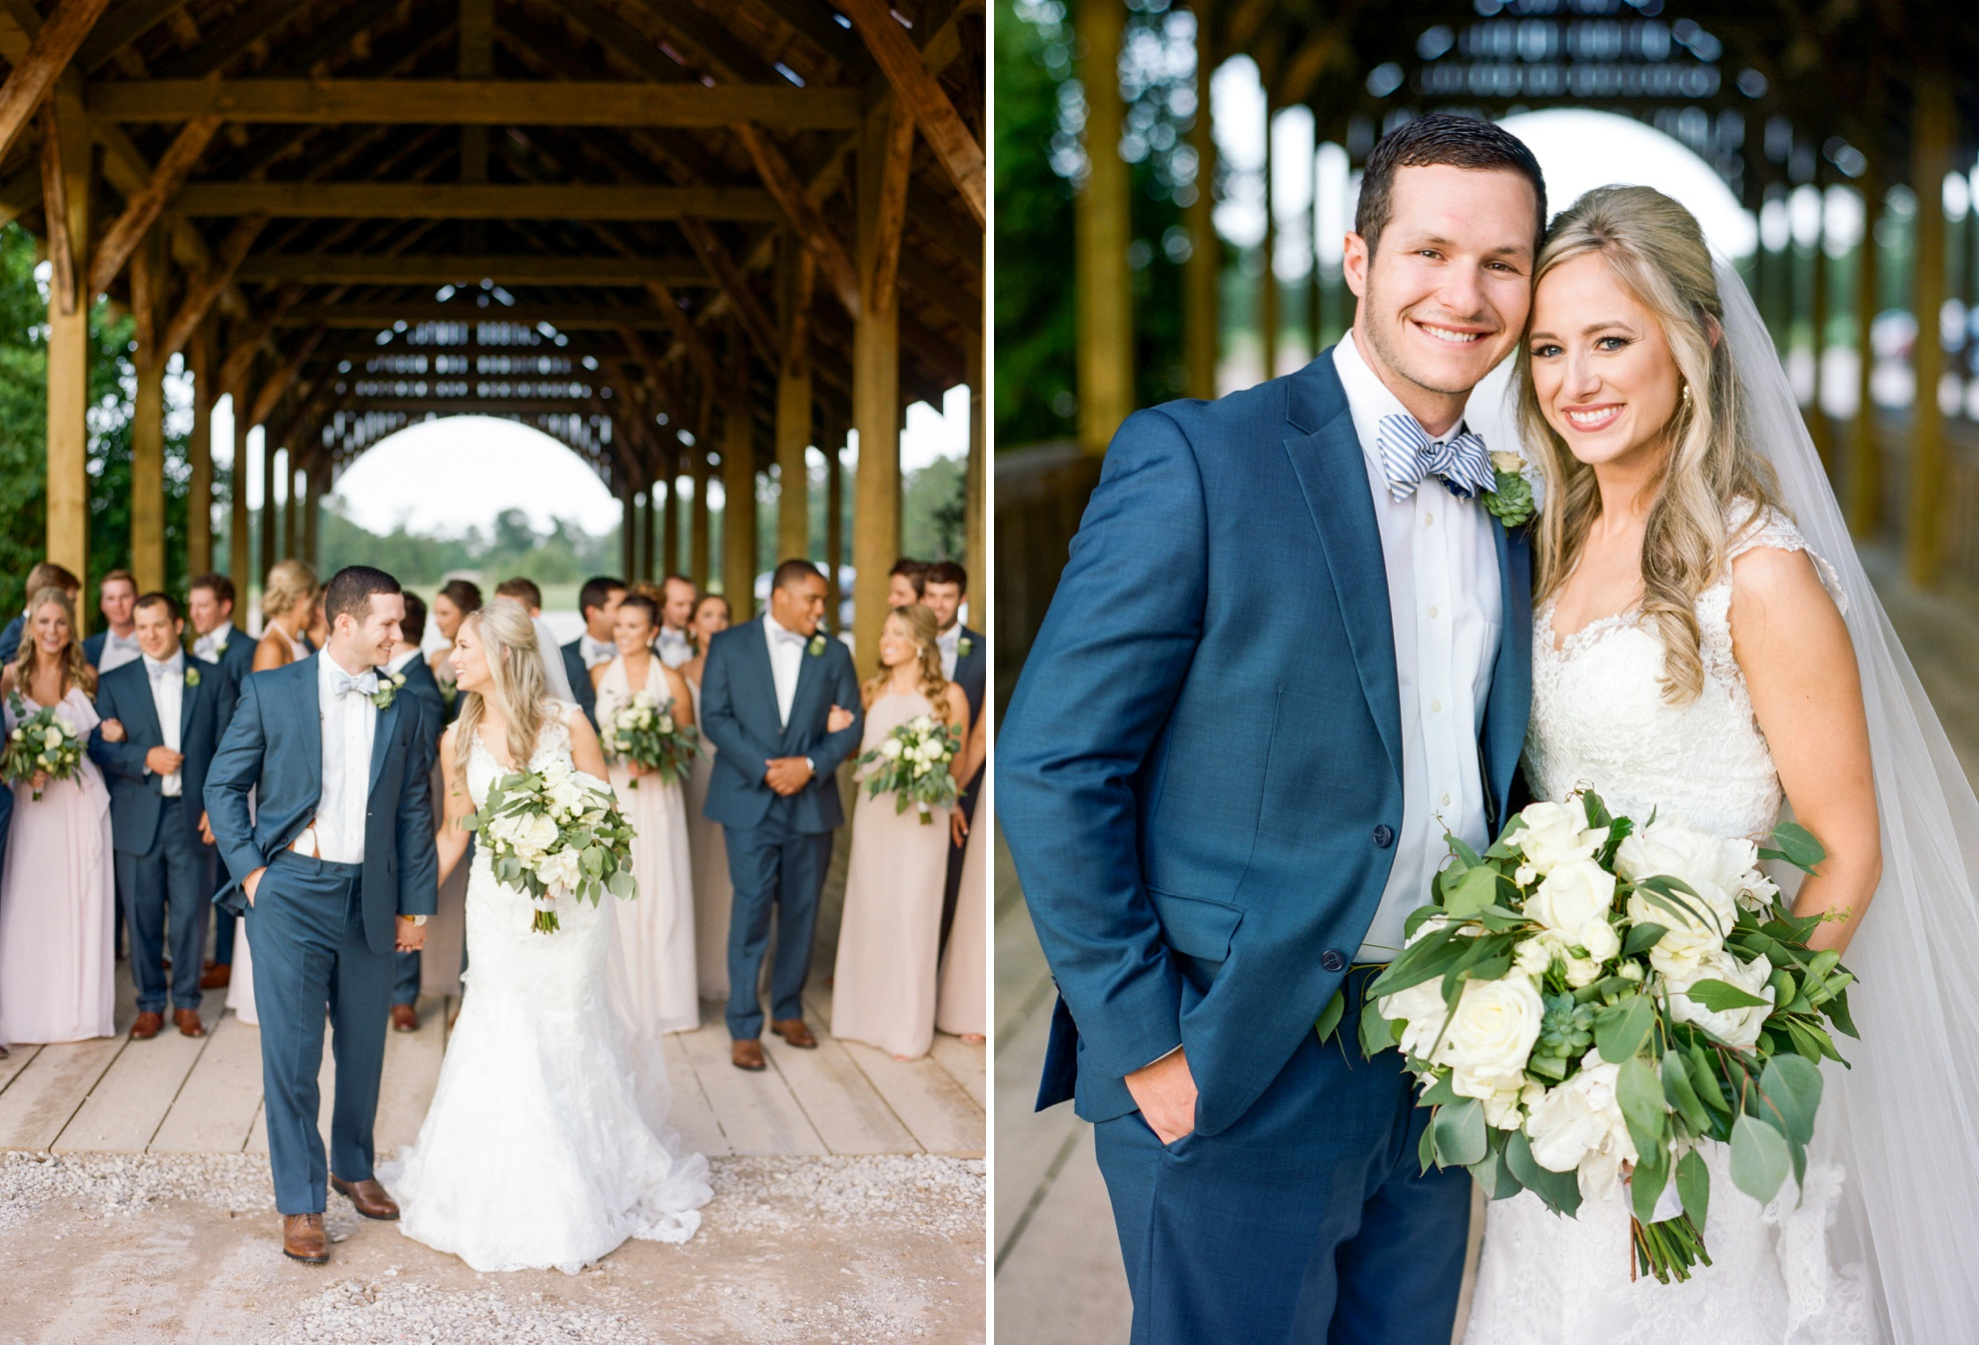 Big-Sky-Barn-Wedding-Ceremony-Reception-Photographer-Houston-Dana-Fernandez-Photography-11.jpg